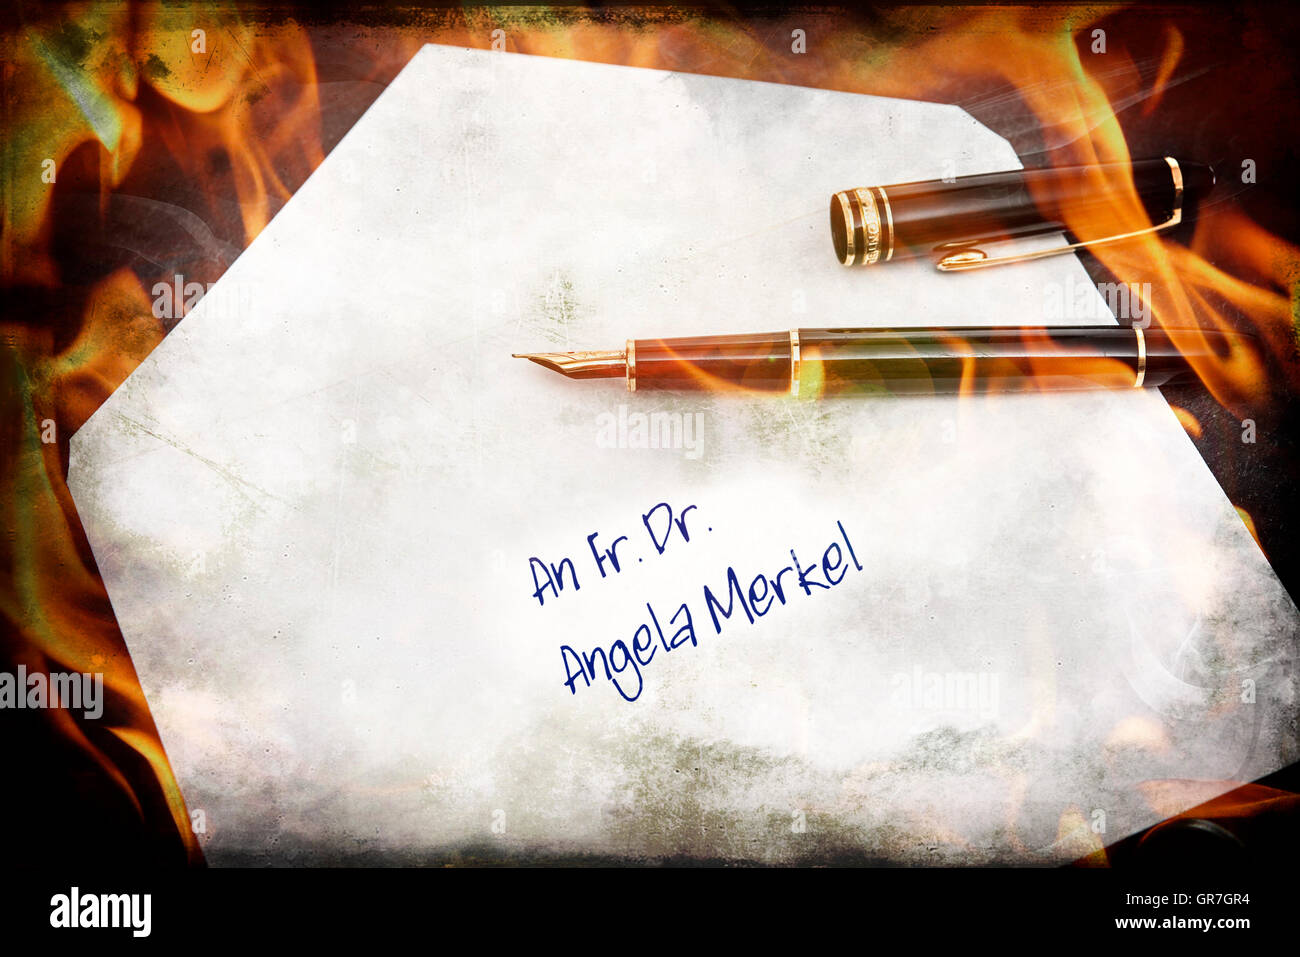 Dunning Letter To The German Chancellor, Symbolic Picture - Stock Image